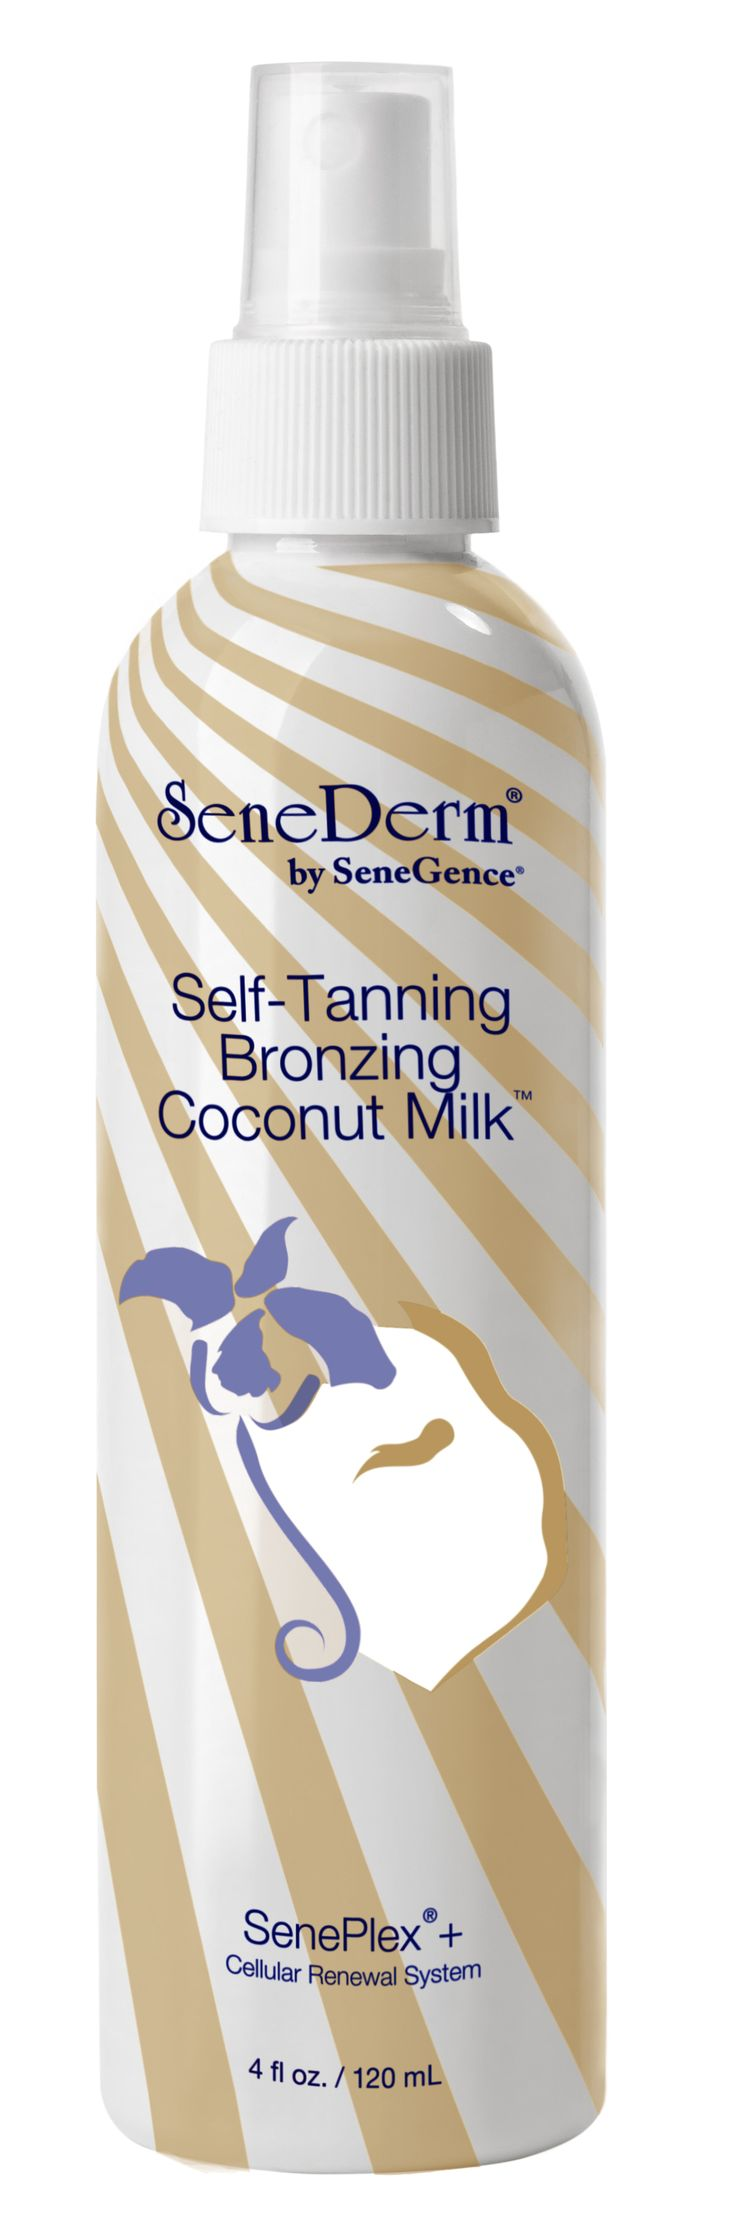 Spritz on your freshly-back-from-the-beach healthy glow with SeneDerm Self-Tanning Bronzing Coconut Milk. Year round, you can look as though you spent all day basking in the sun, without exposing your skin to harmful UV rays.